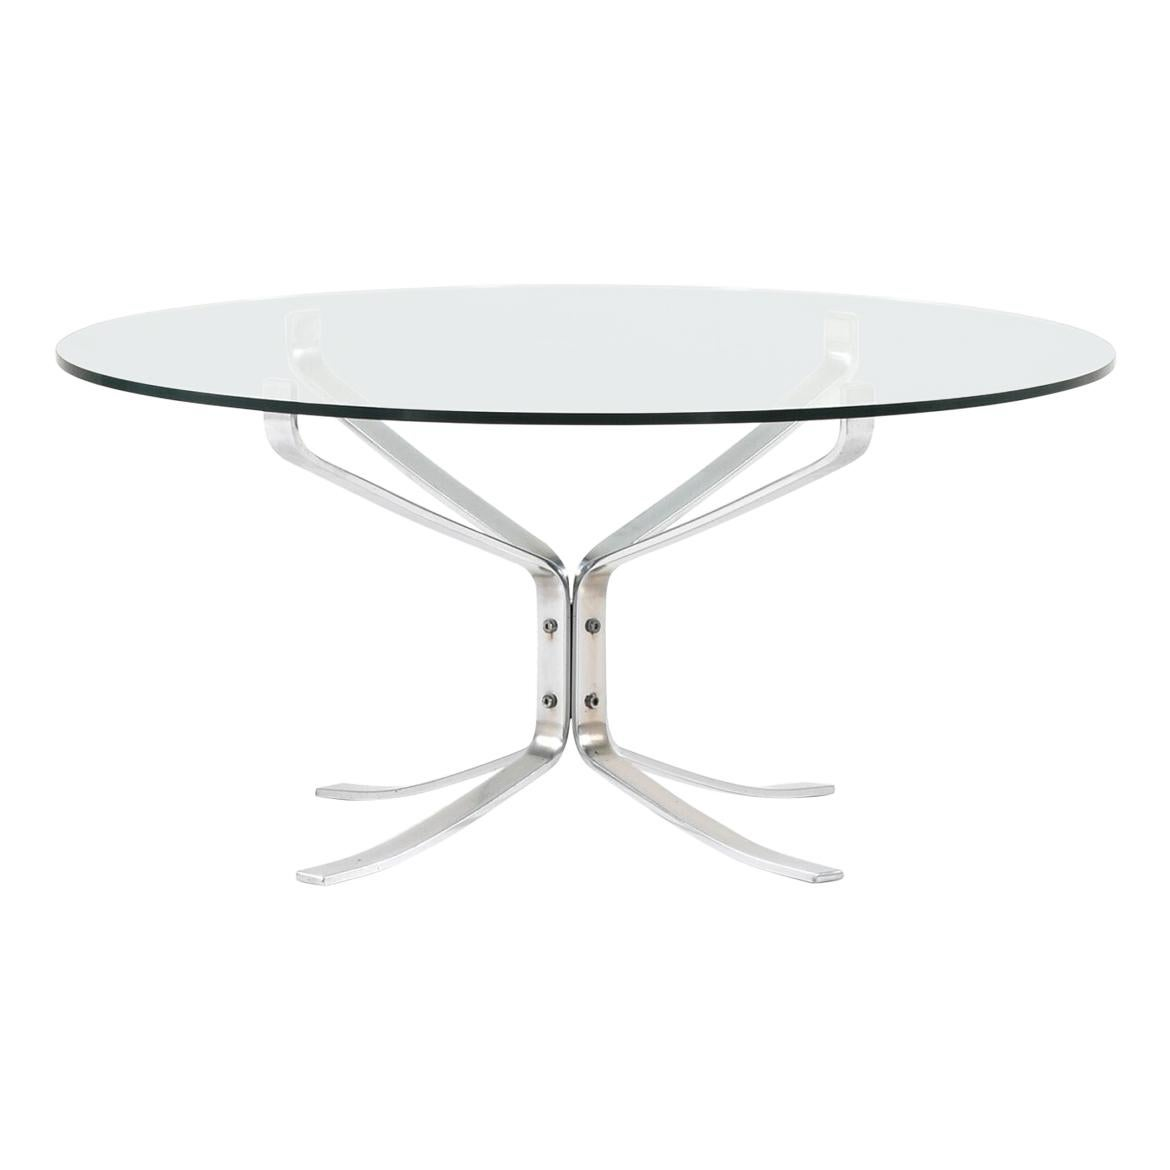 Sigurd Resell Coffee Table Produced by Vatne Möbler in Norway